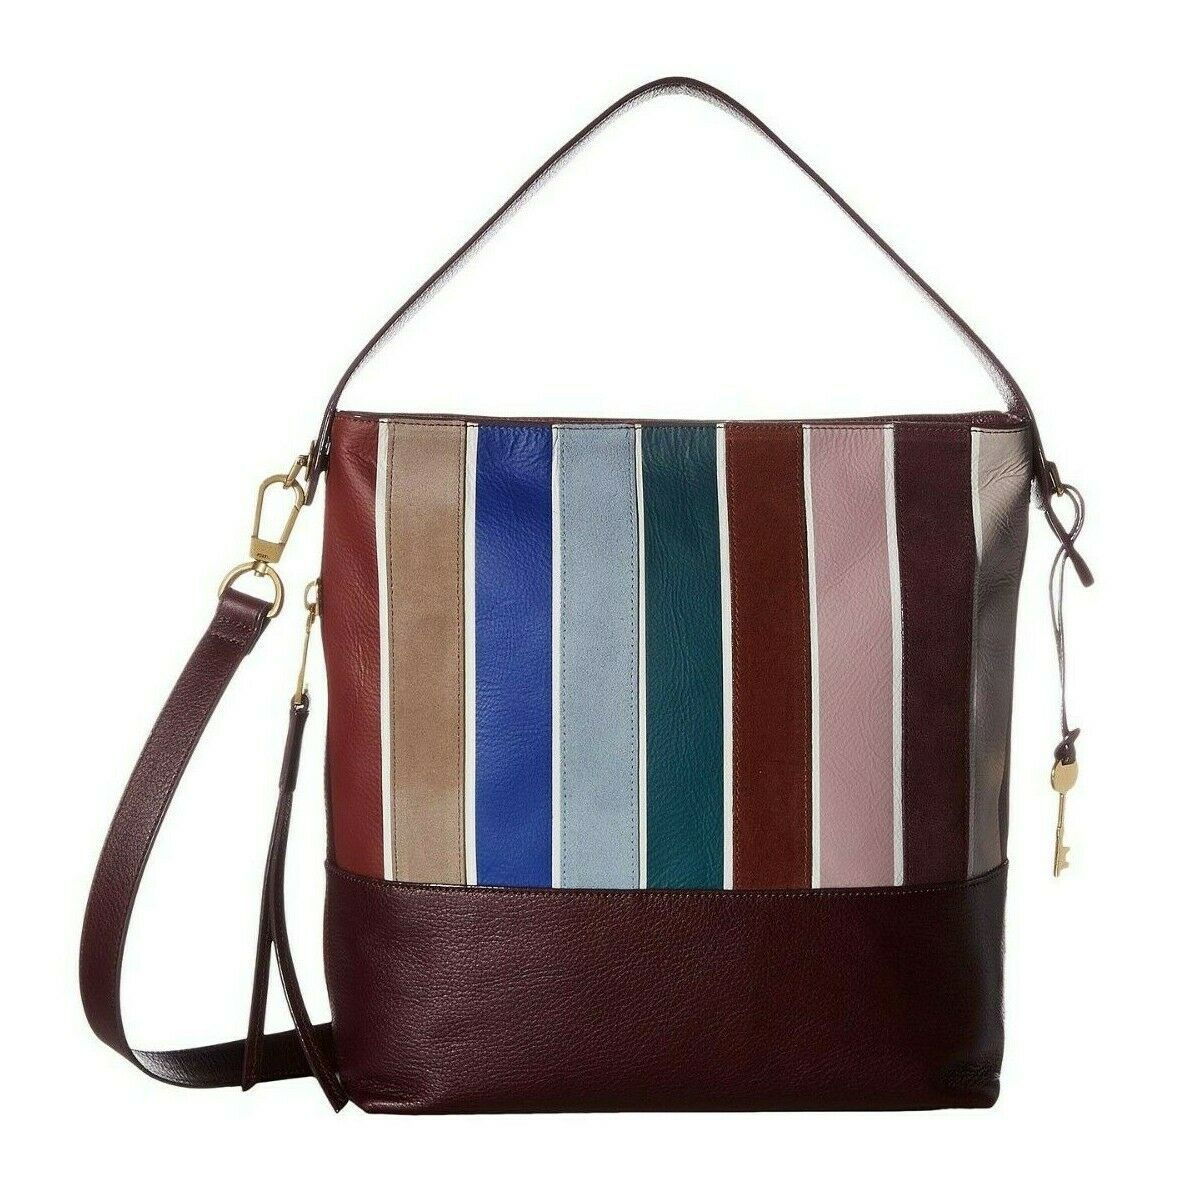 New Fossil Women's Maya Small Leather Hobo Bag Variety Colors image 2